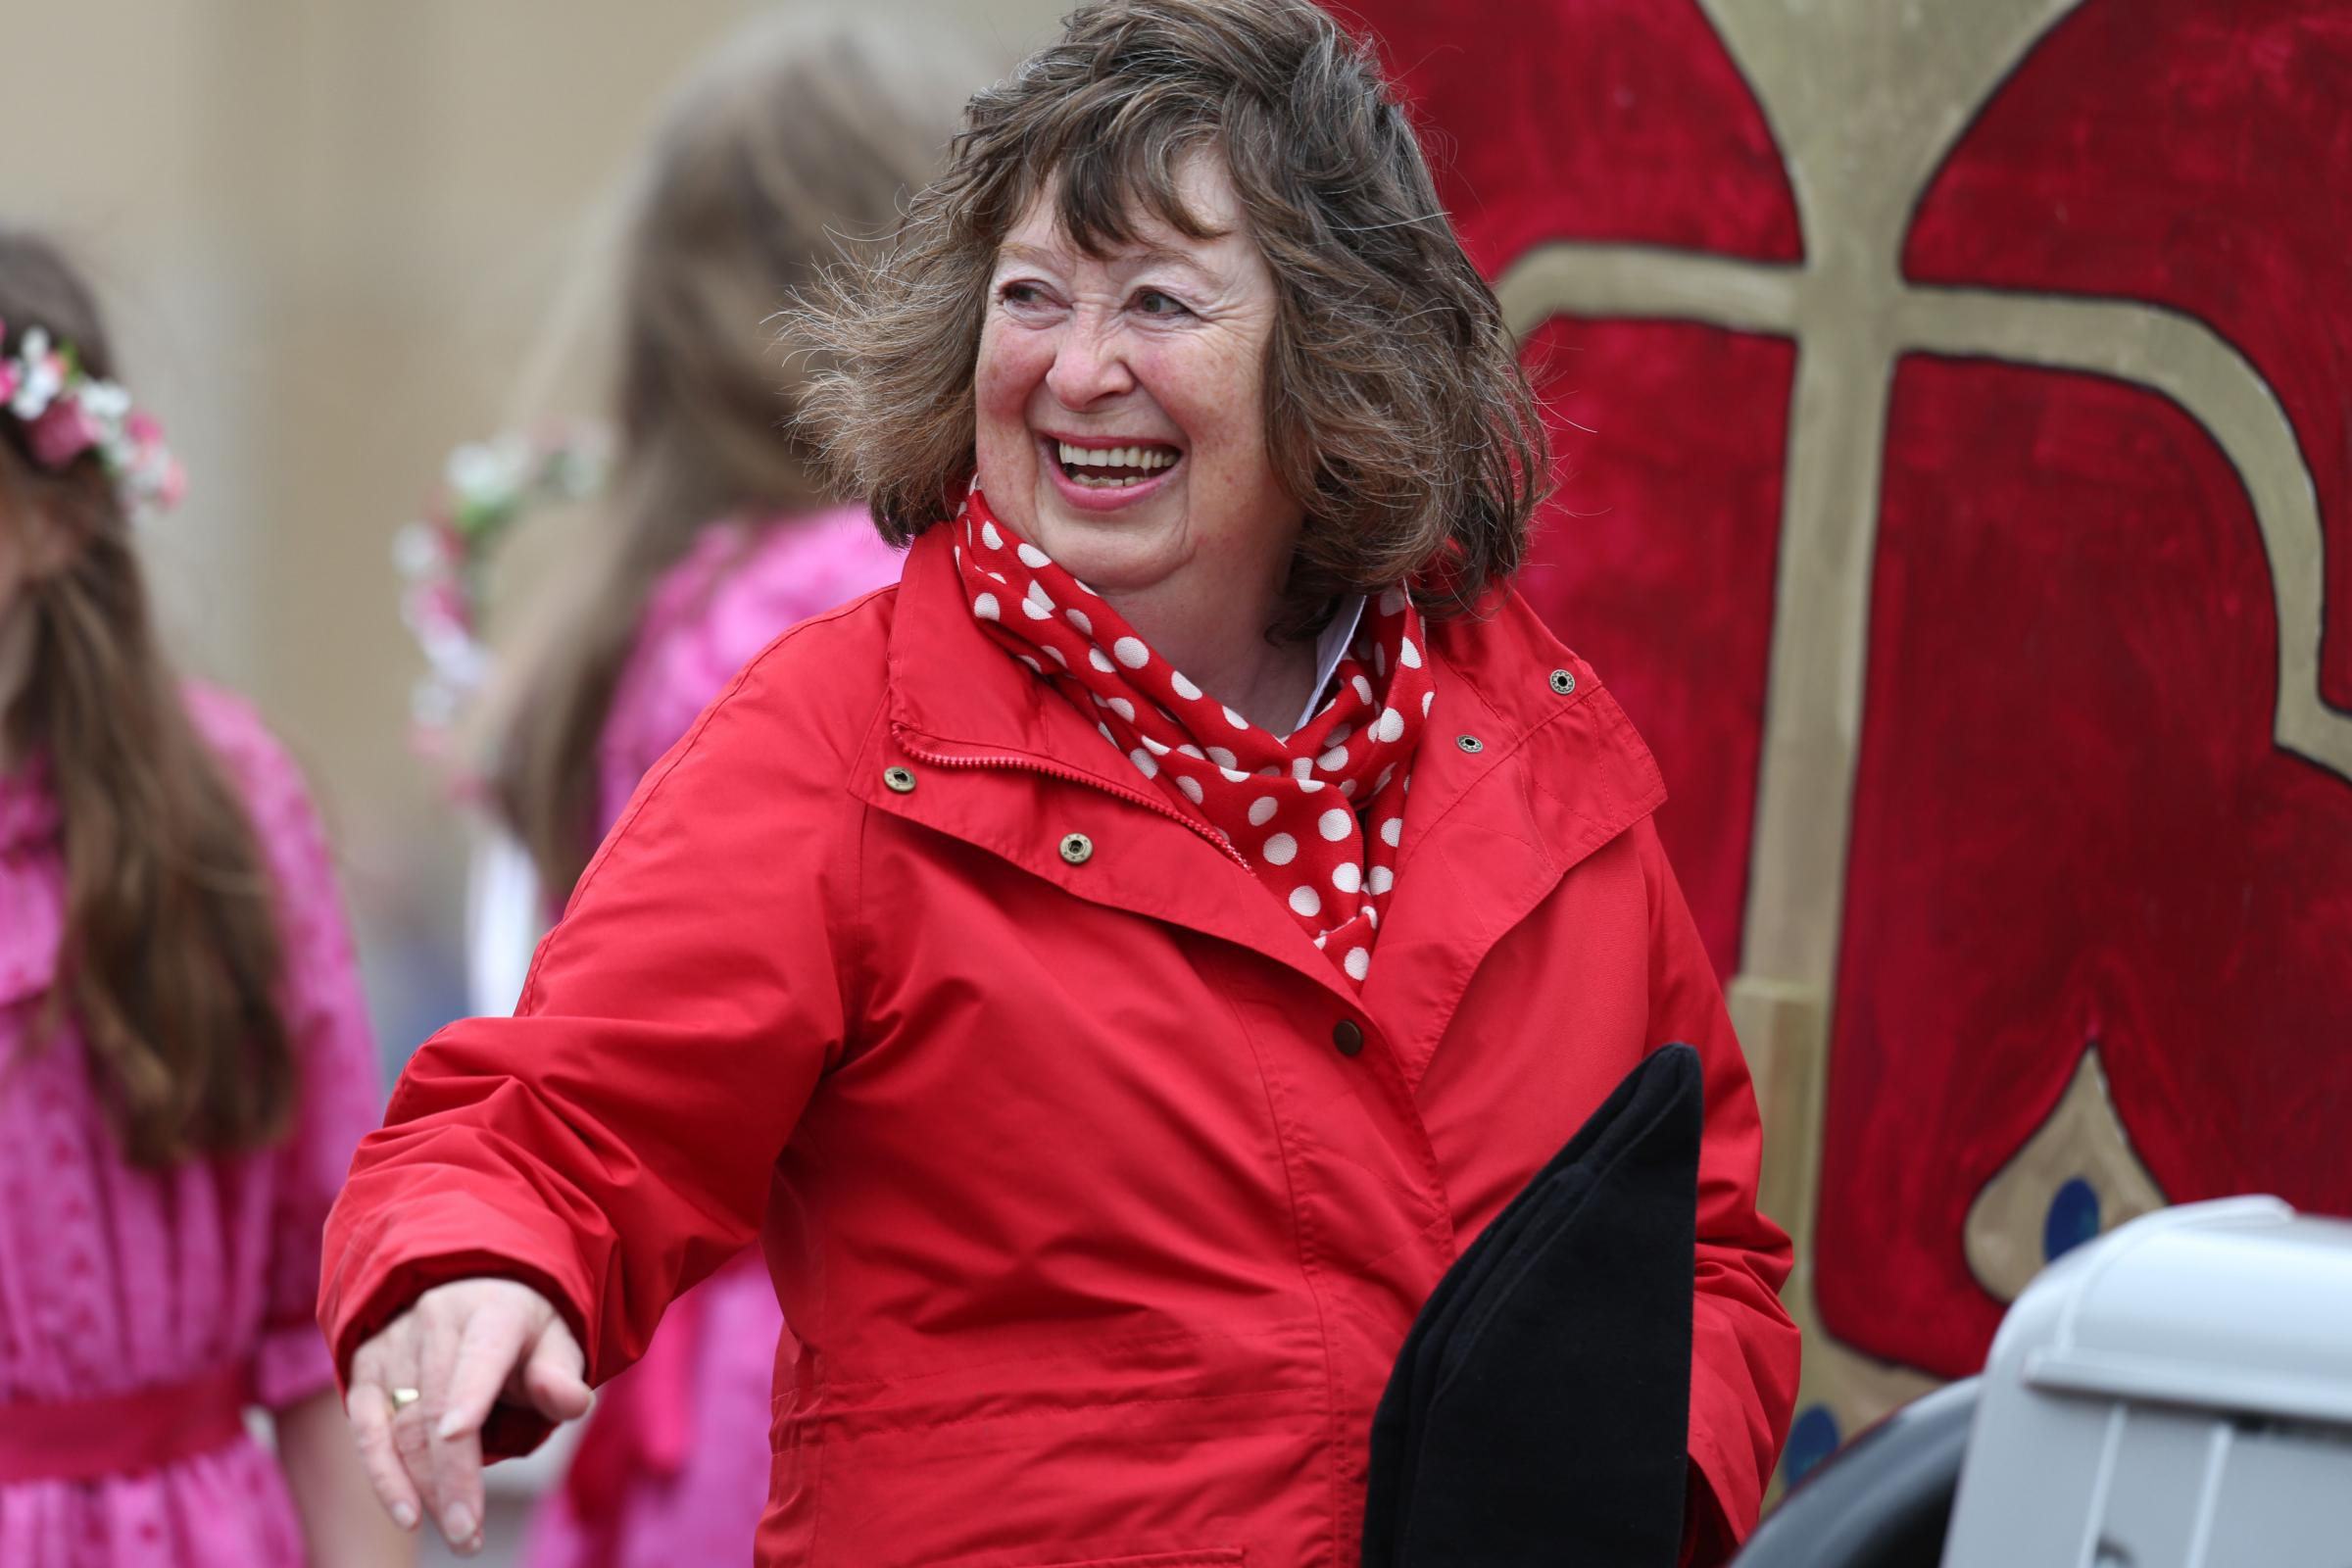 Peebles Community Council secretary Anne Snoddy (pictured) will step down in May. Photo: Helen Barrington